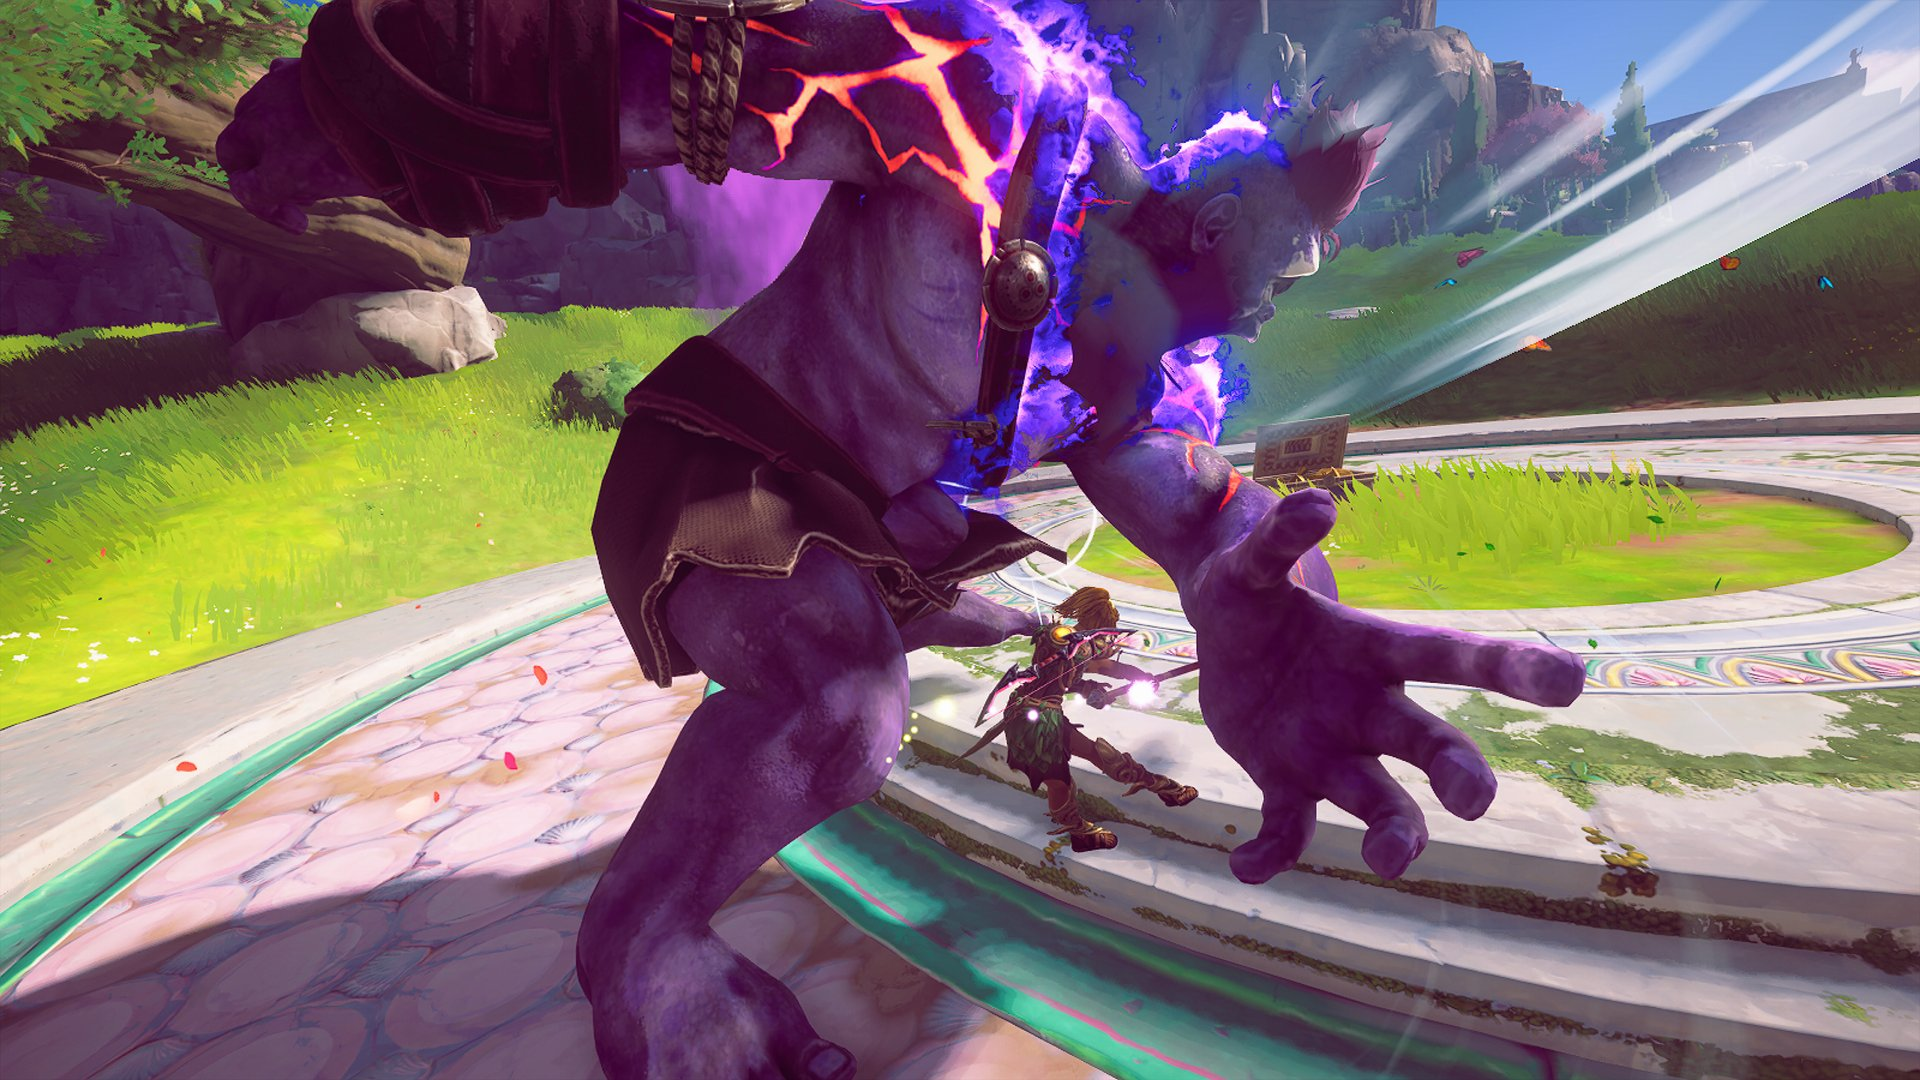 A screenshot from Fenyx, dodging a punch from a purple troll.